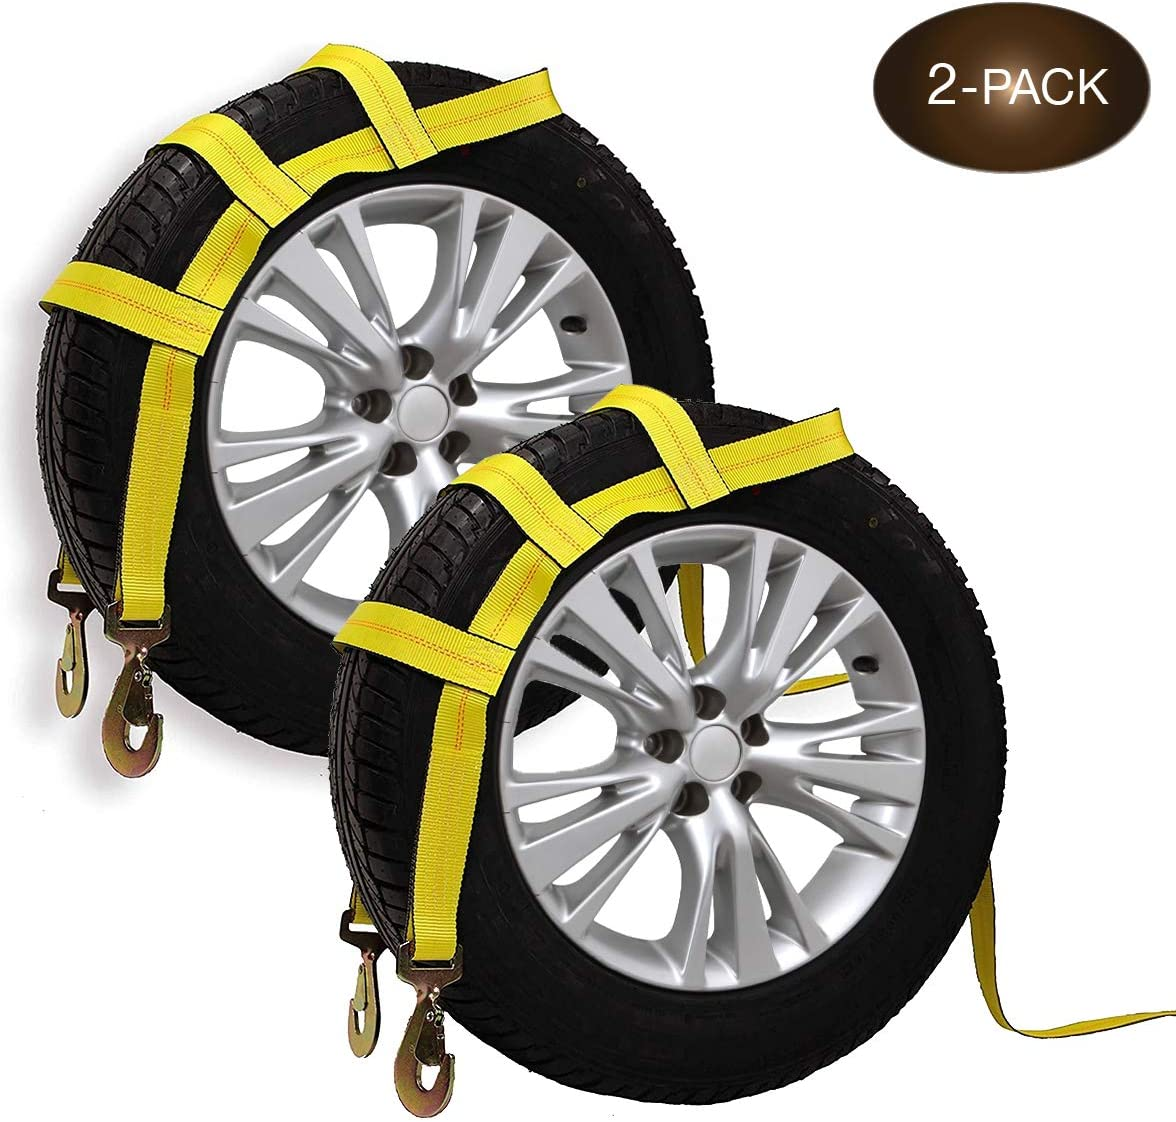 DC Cargo Mall Tow Dolly Basket Twisted with Oakland Mall Straps Max 82% OFF Hooks Snap